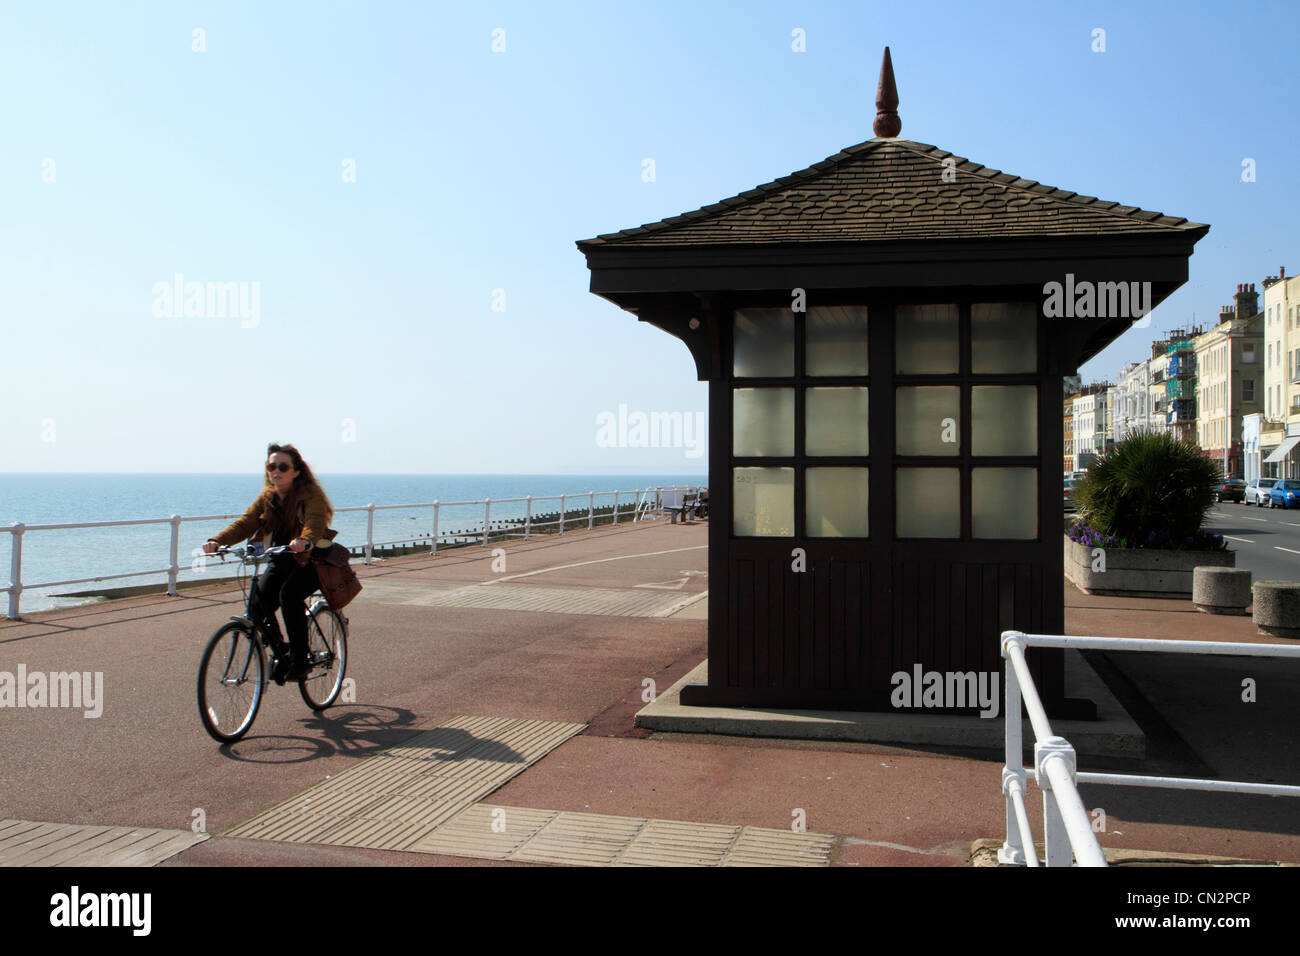 Seafront cycle lane, St Leonards-on-sea, East Sussex, UK - Stock Image